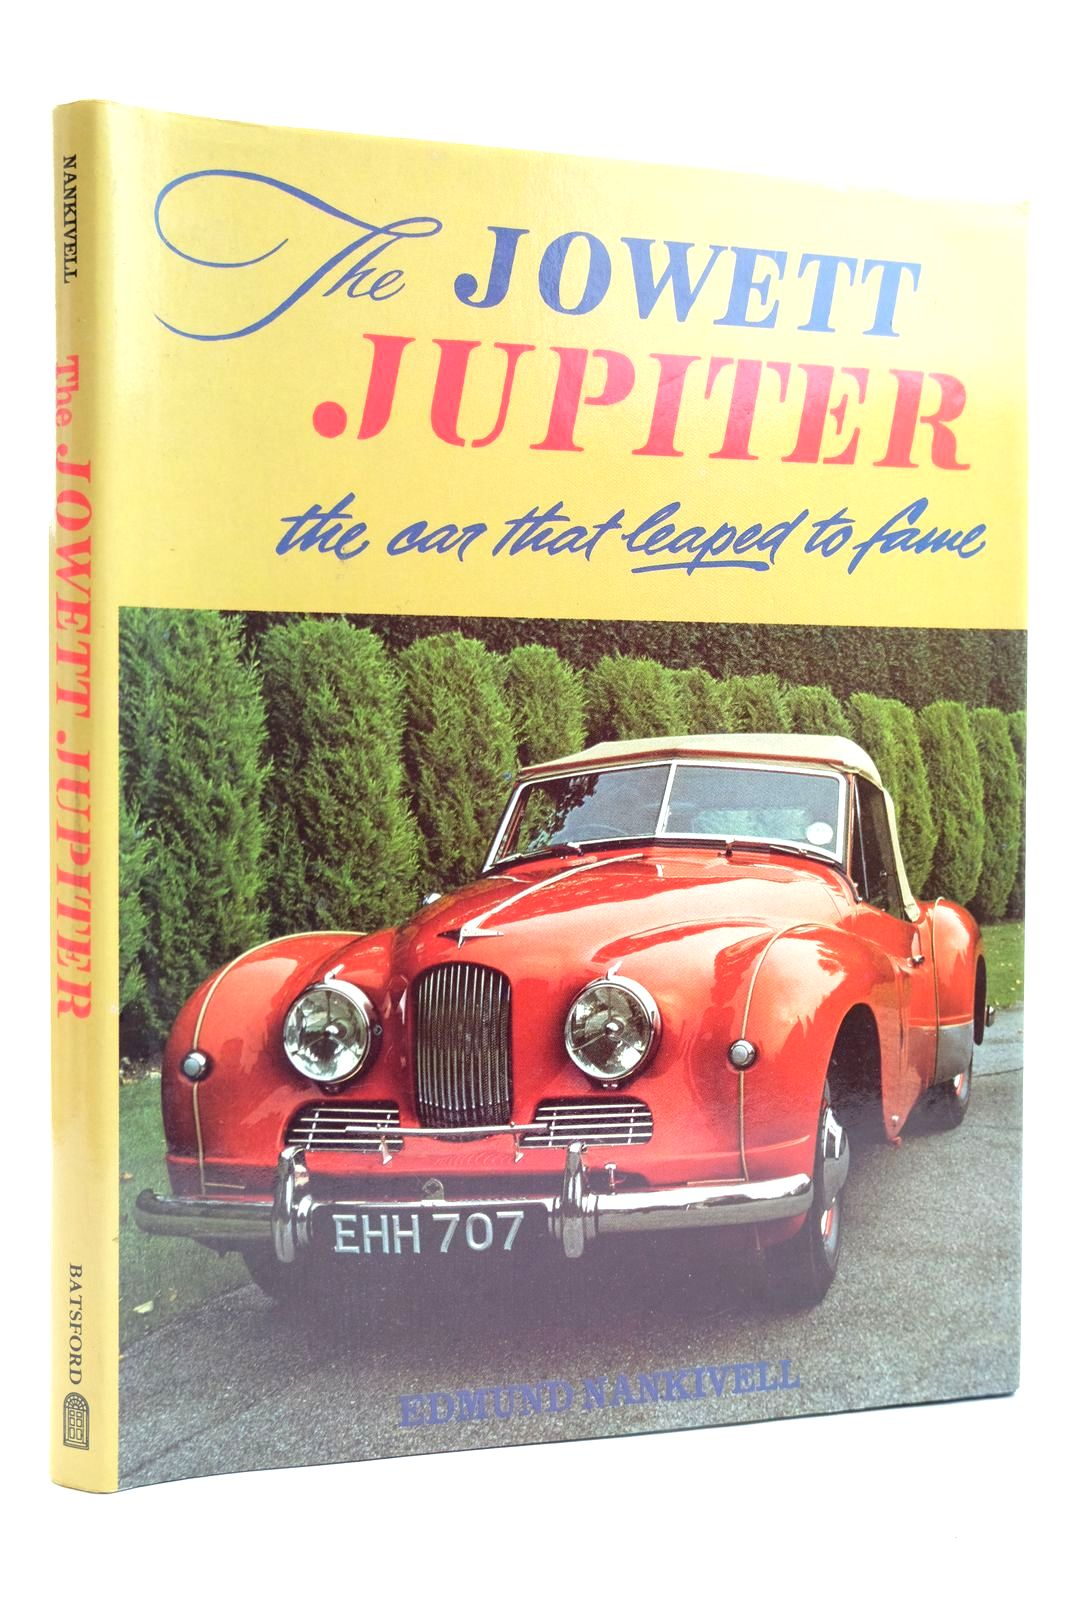 Photo of THE JOWETT JUPITER THE CAR THAT LEAPED TO FAME written by Nankivell, Edmund published by B.T. Batsford (STOCK CODE: 2131827)  for sale by Stella & Rose's Books